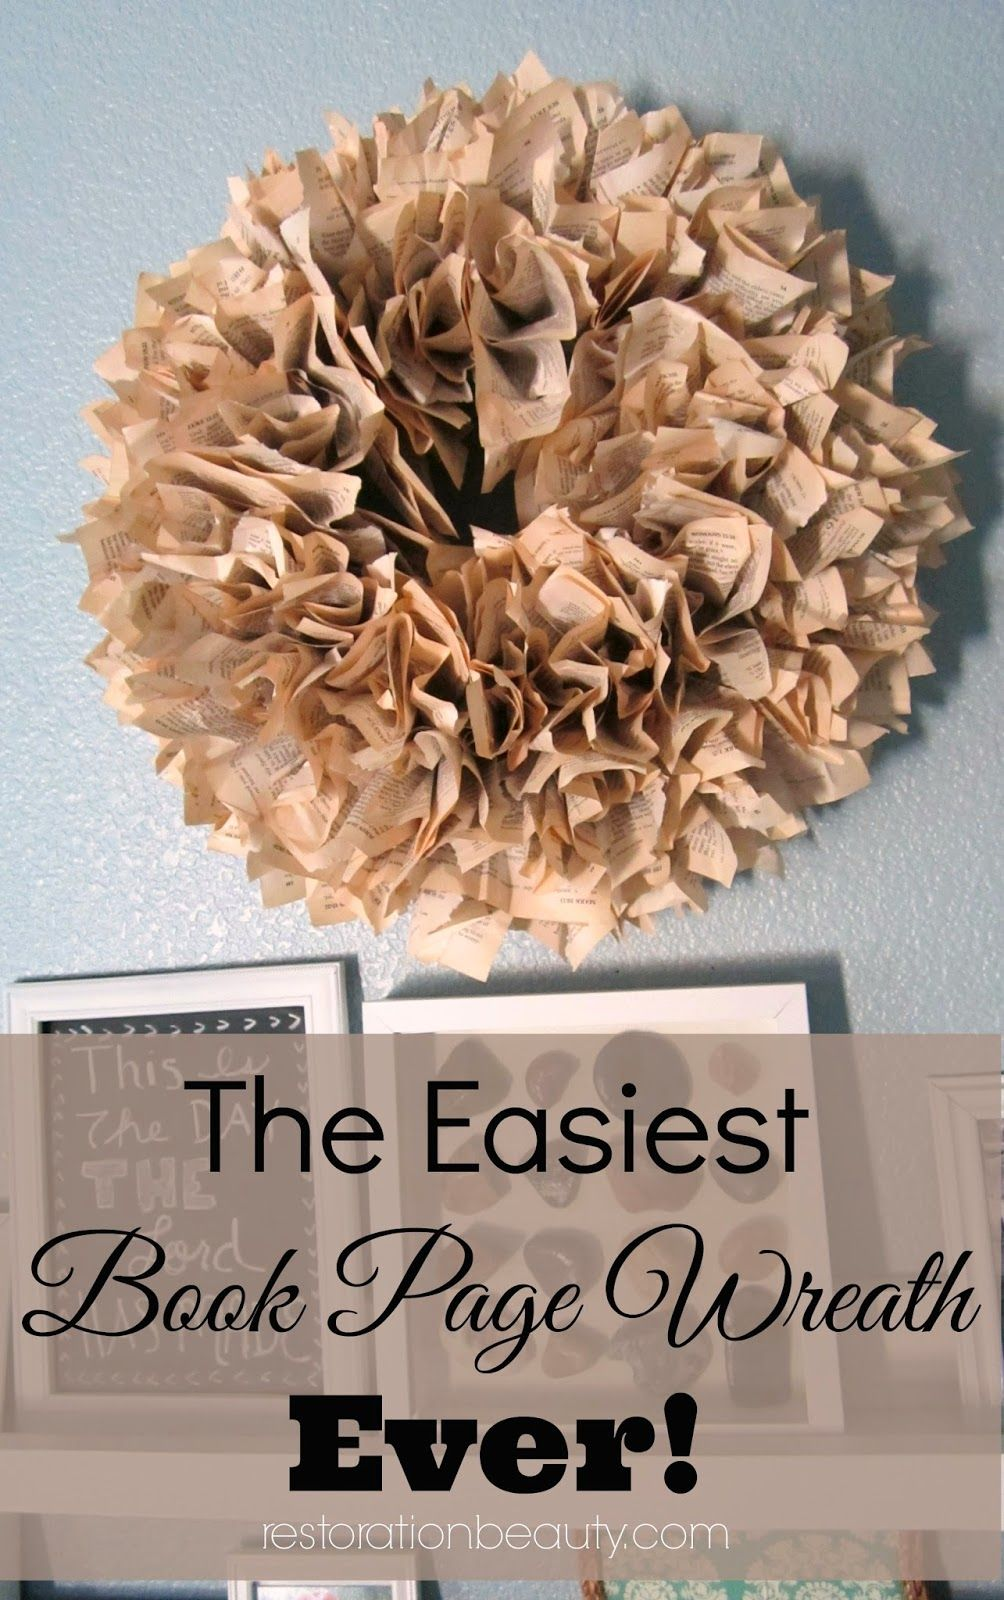 How To Make Diy Book Page Wreath Quick Easy Method Book Page Wreath Diy Old Books Diy Book